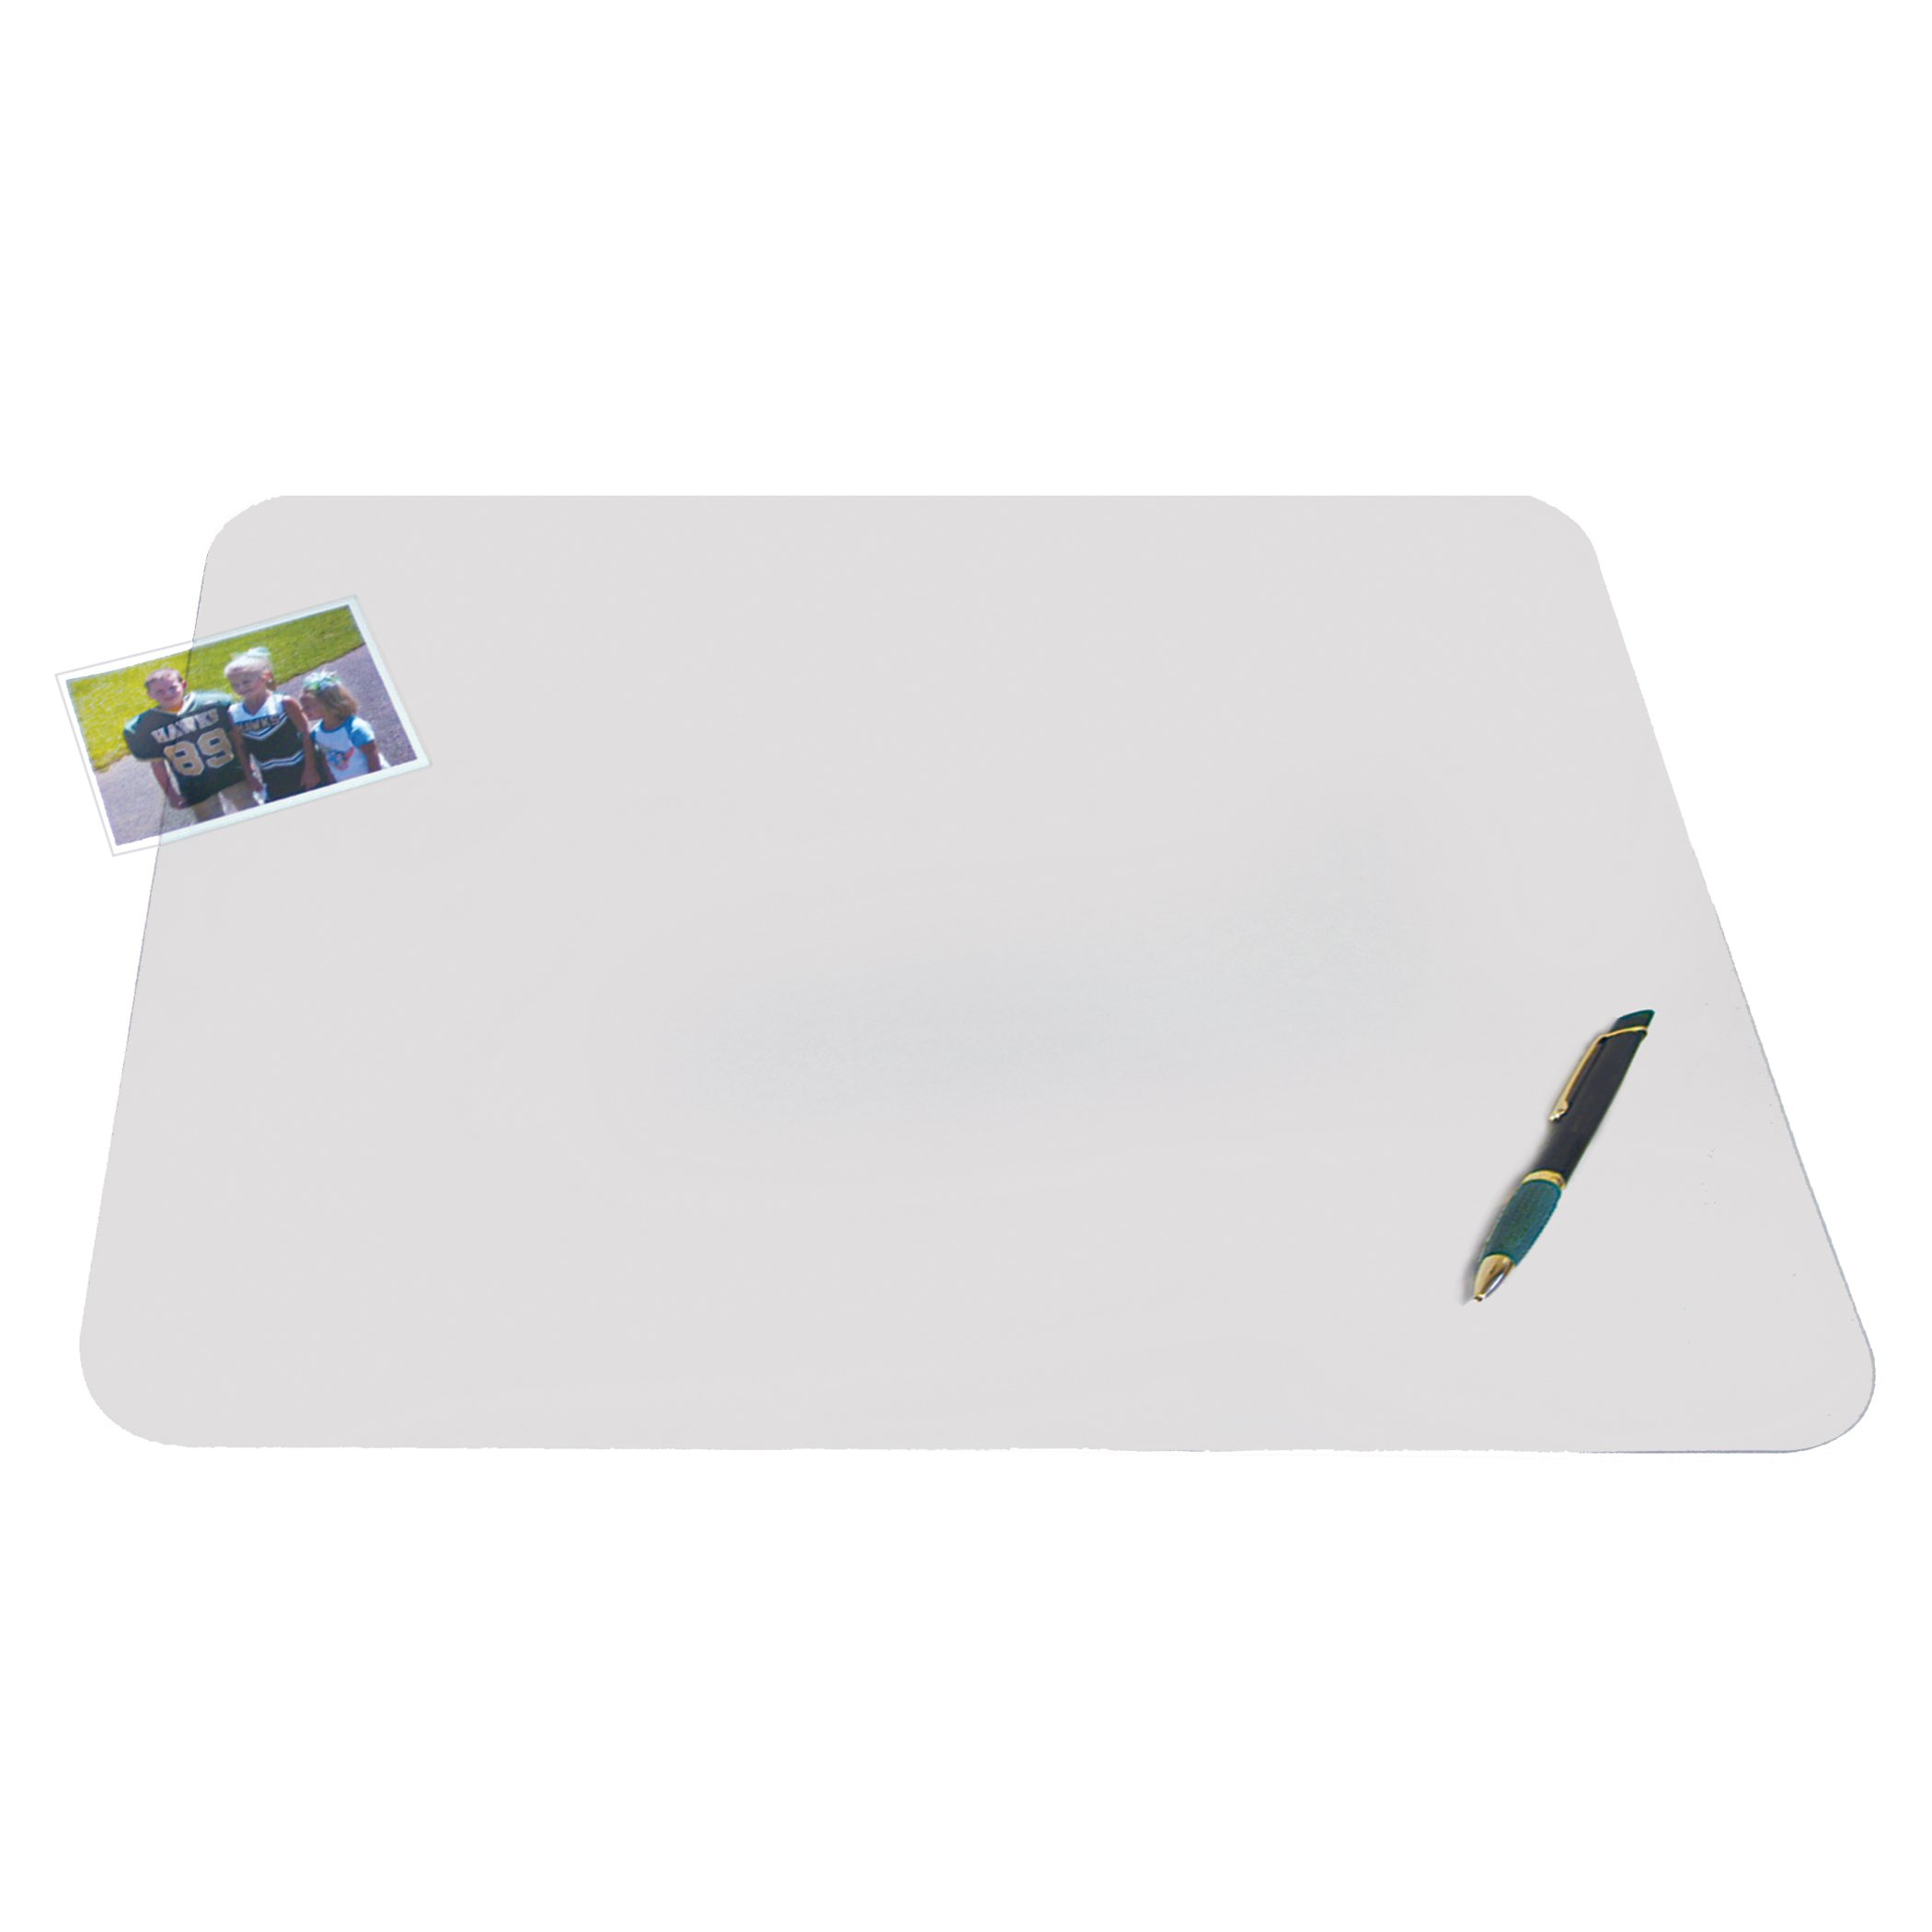 Artistic  60740M 12'' x 17'' Krystal View Non-Glare Antimicrobial Desk Pad Organizer with Exclusive Microban Antimicrobial Protection, Frosted